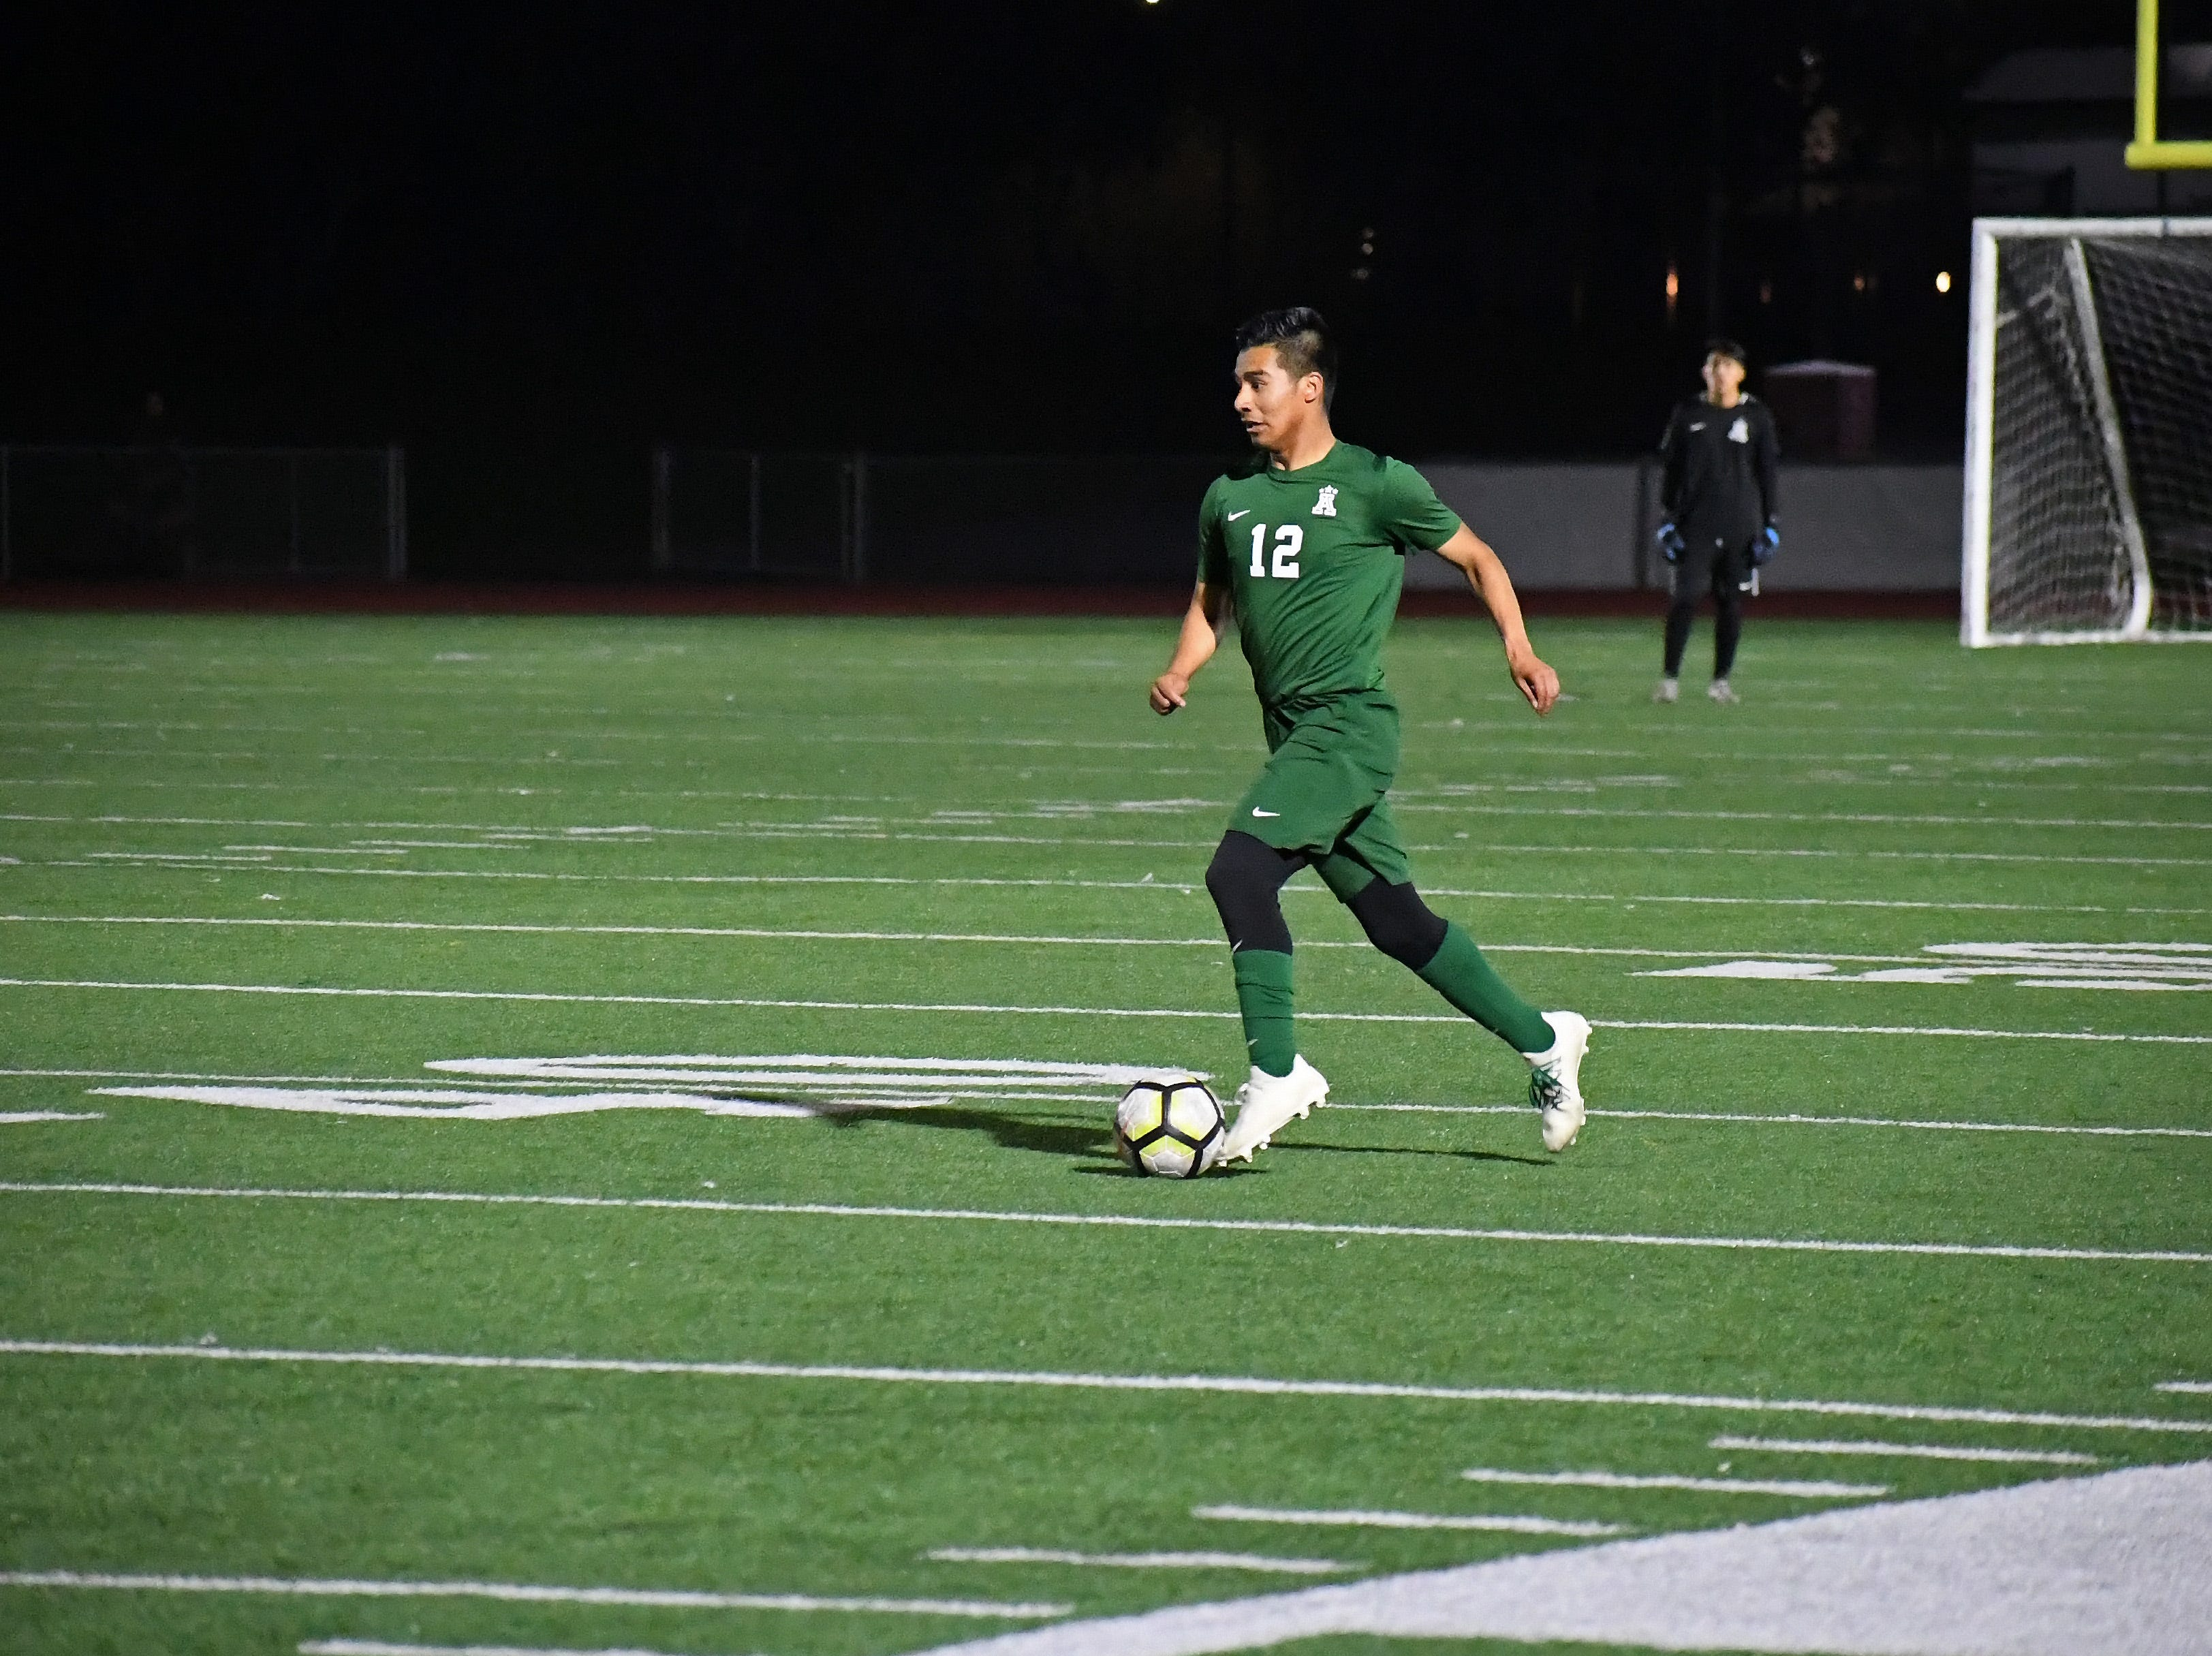 Alisal midfielder Jesus Gregorio (12) sprints towards the attacking third.